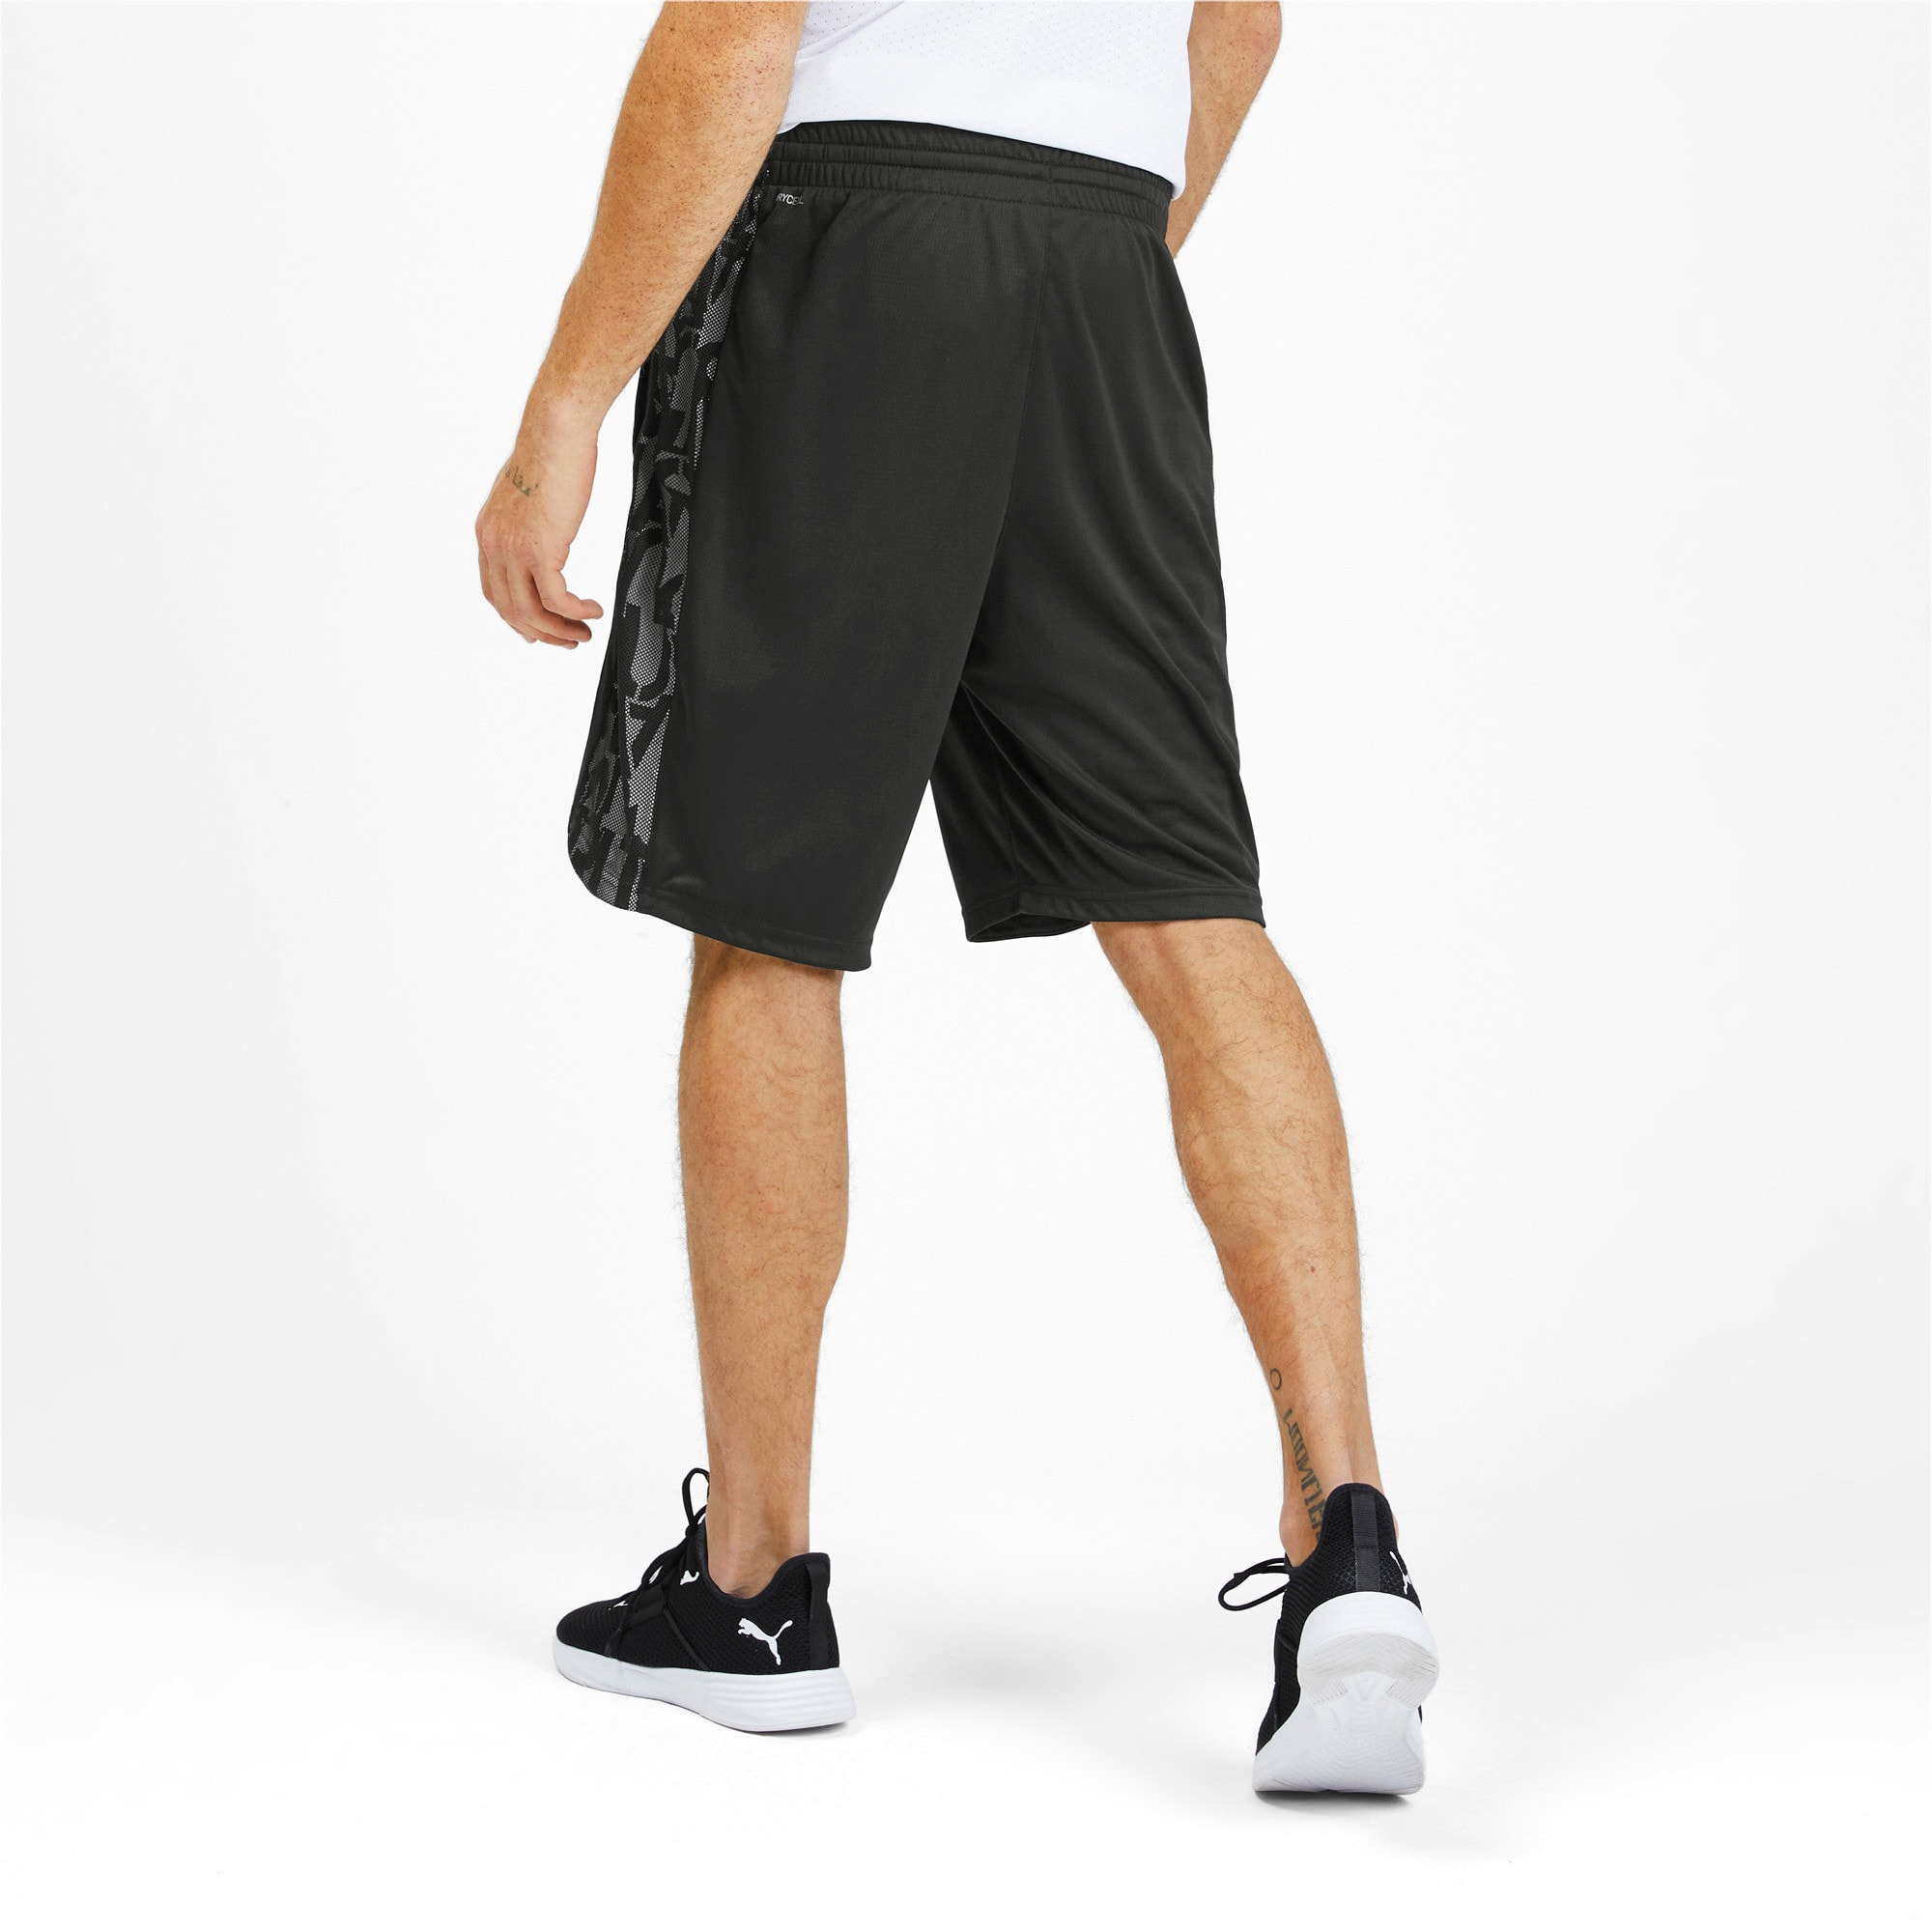 Thumbnail 2 of Power Vent Men's Training Shorts, Puma Black-Puma White, medium-IND